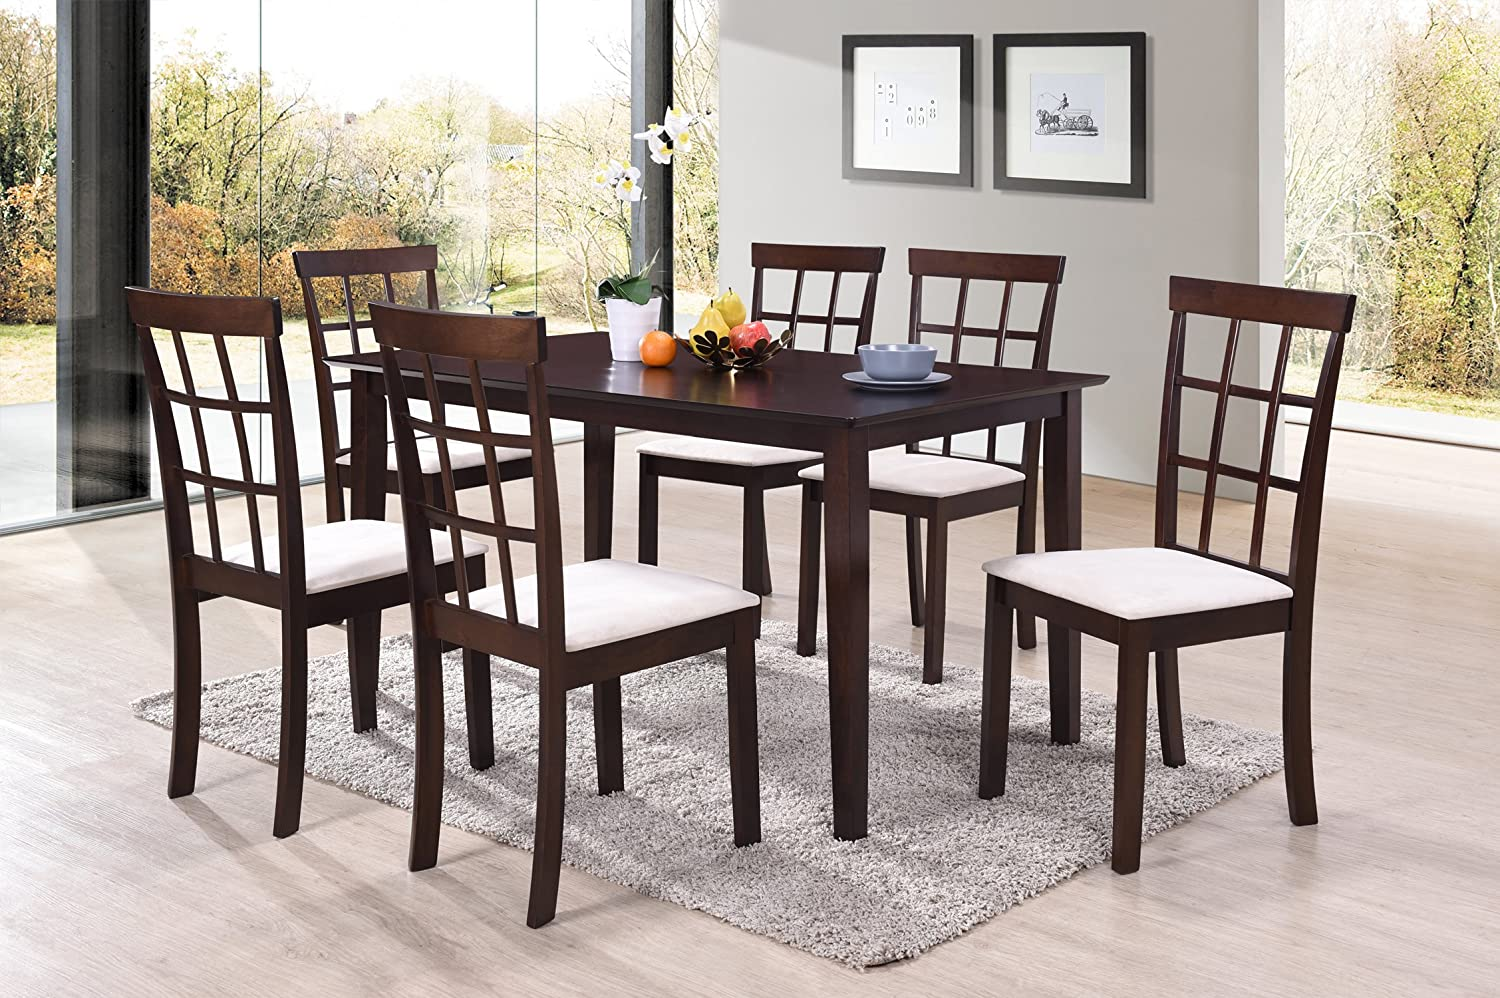 Harper Bright Designs 7 Piece Dining Set Rubber Wood Construction 4 Person Dining Table with Microsuede Upholstered Chairs 7 Piece